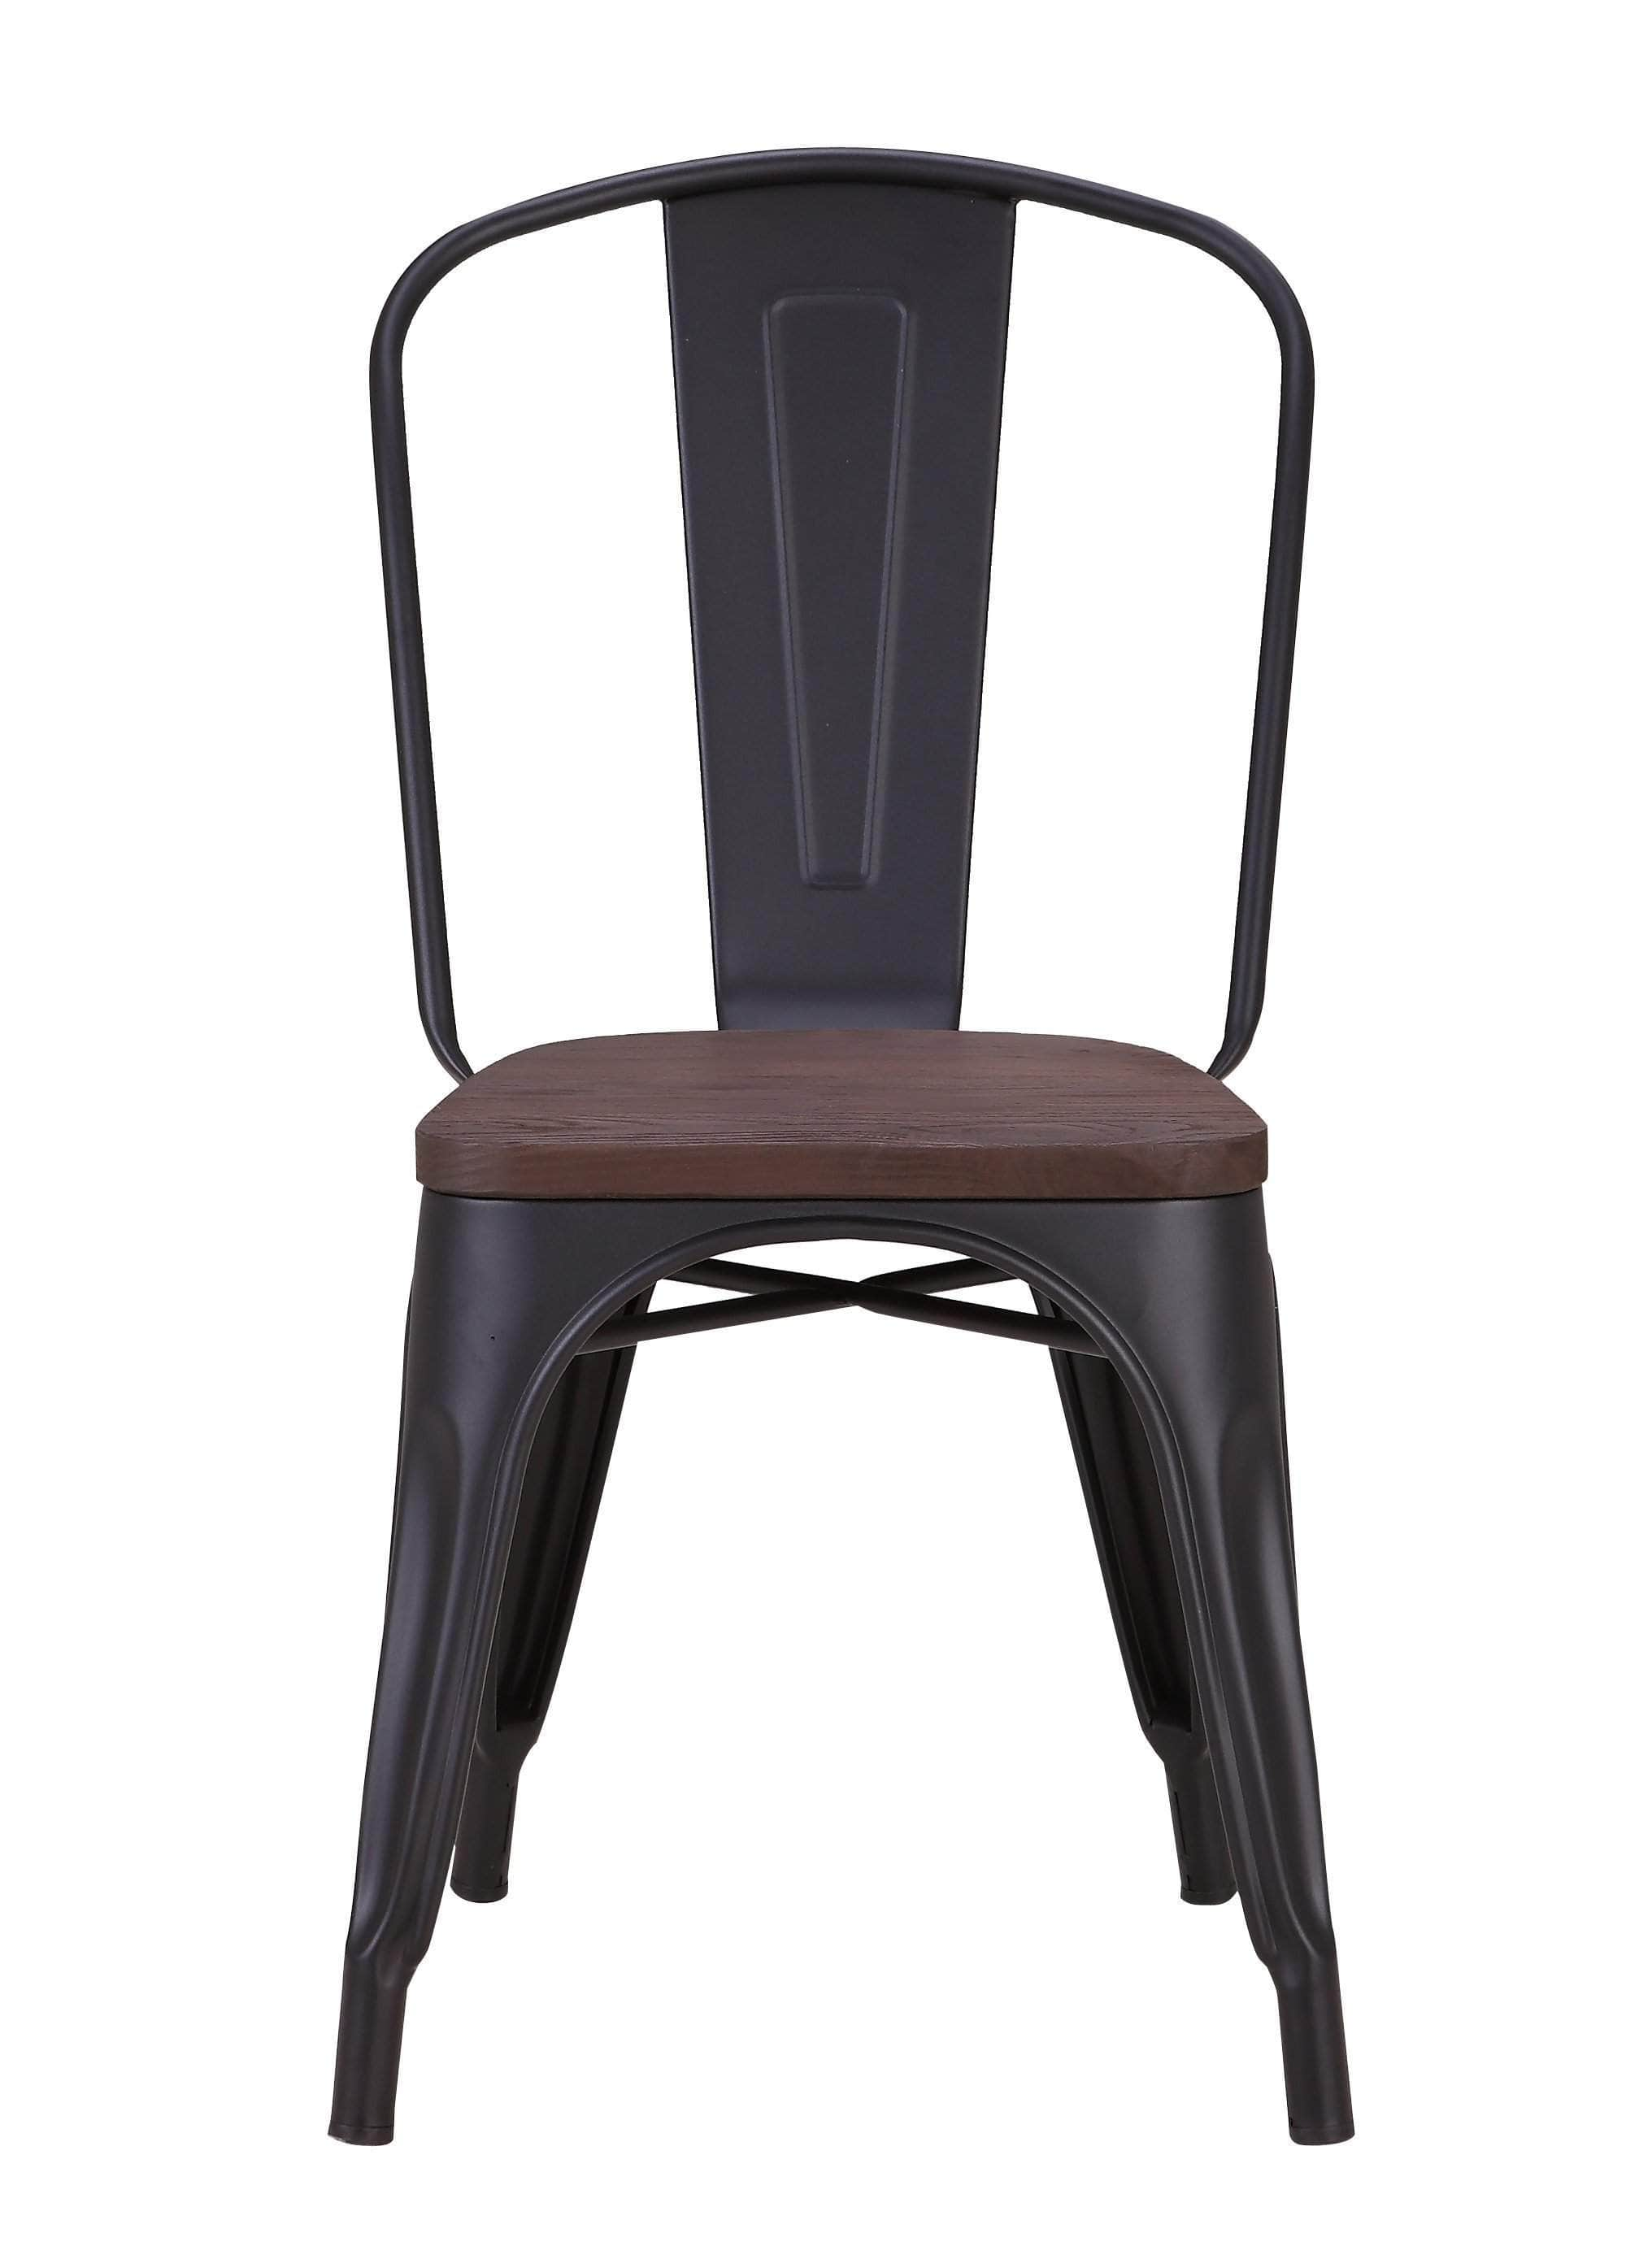 of com photo restaurant steel unforgettable single metal iron padded frame folding bistro design chair concept black zoom full table with two farmhouse computer flipkart home to osaka coffee click furniture brace chairs amazon tolix alera wood blue made dining support size